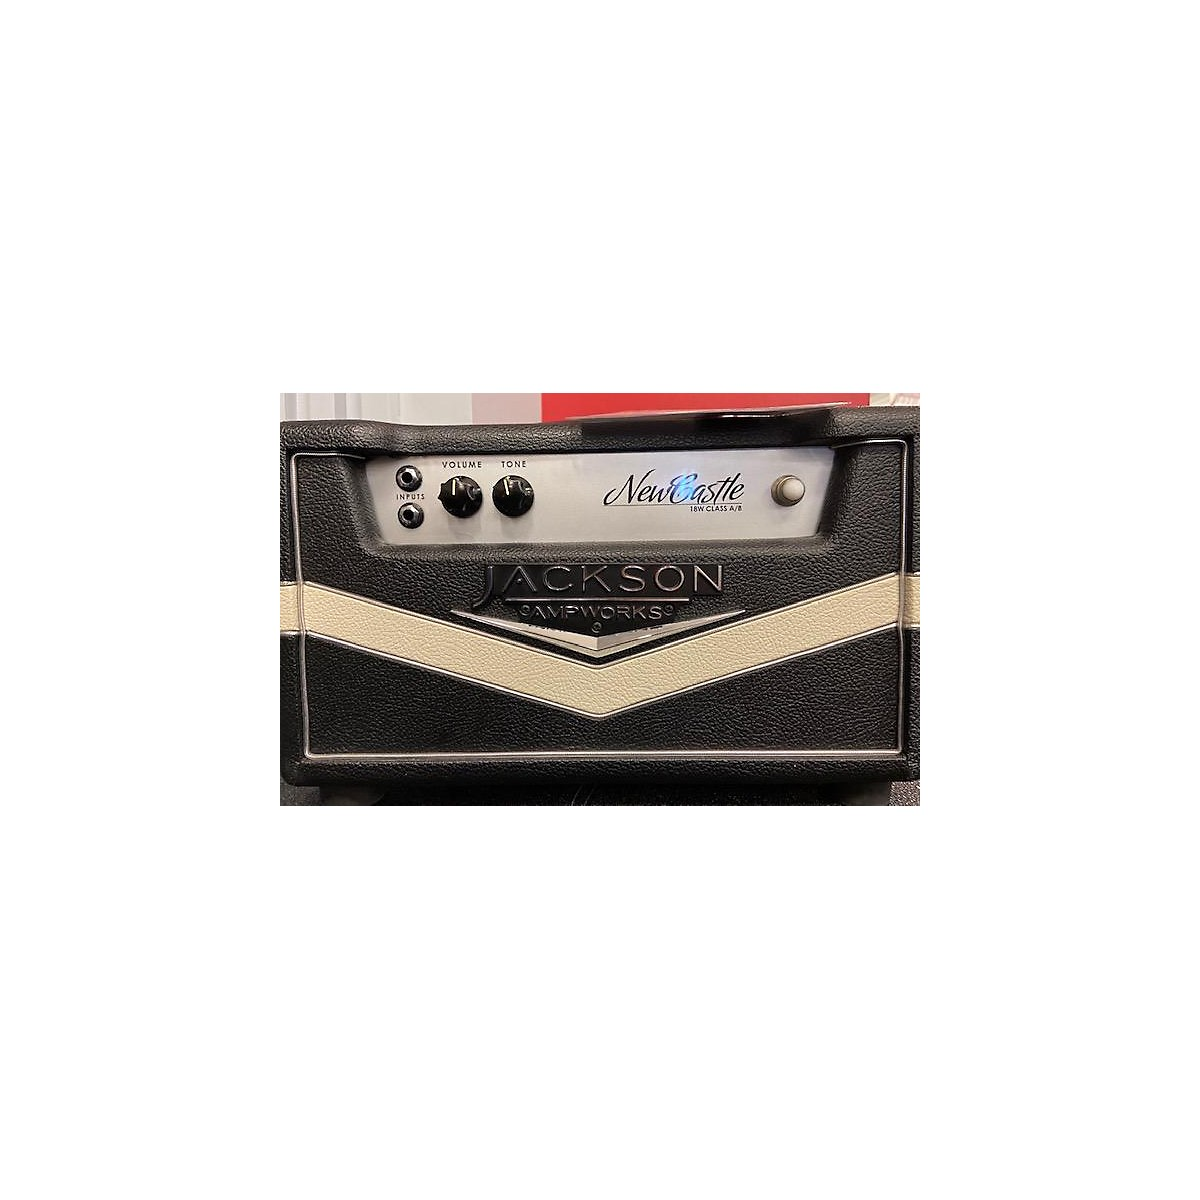 Jackson Ampworks New Castle 18w Solid State Guitar Amp Head